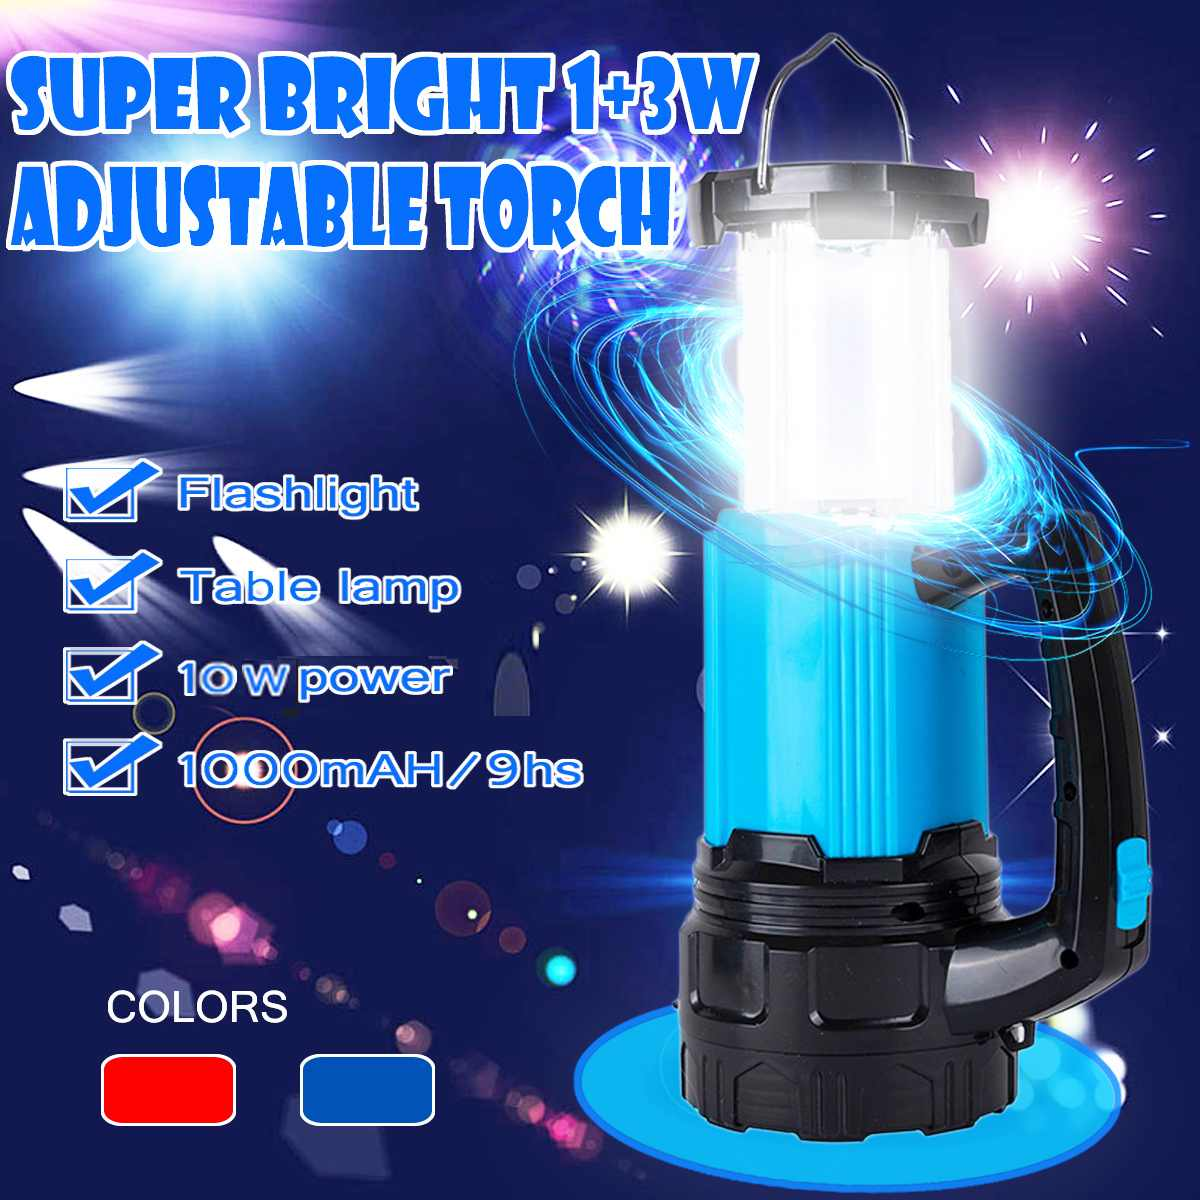 Adjustable LED Portable Spotlight Working Lights Solar Power USB Rechargeable High Brightness Camping Led Latern FlashlightAdjustable LED Portable Spotlight Working Lights Solar Power USB Rechargeable High Brightness Camping Led Latern Flashlight